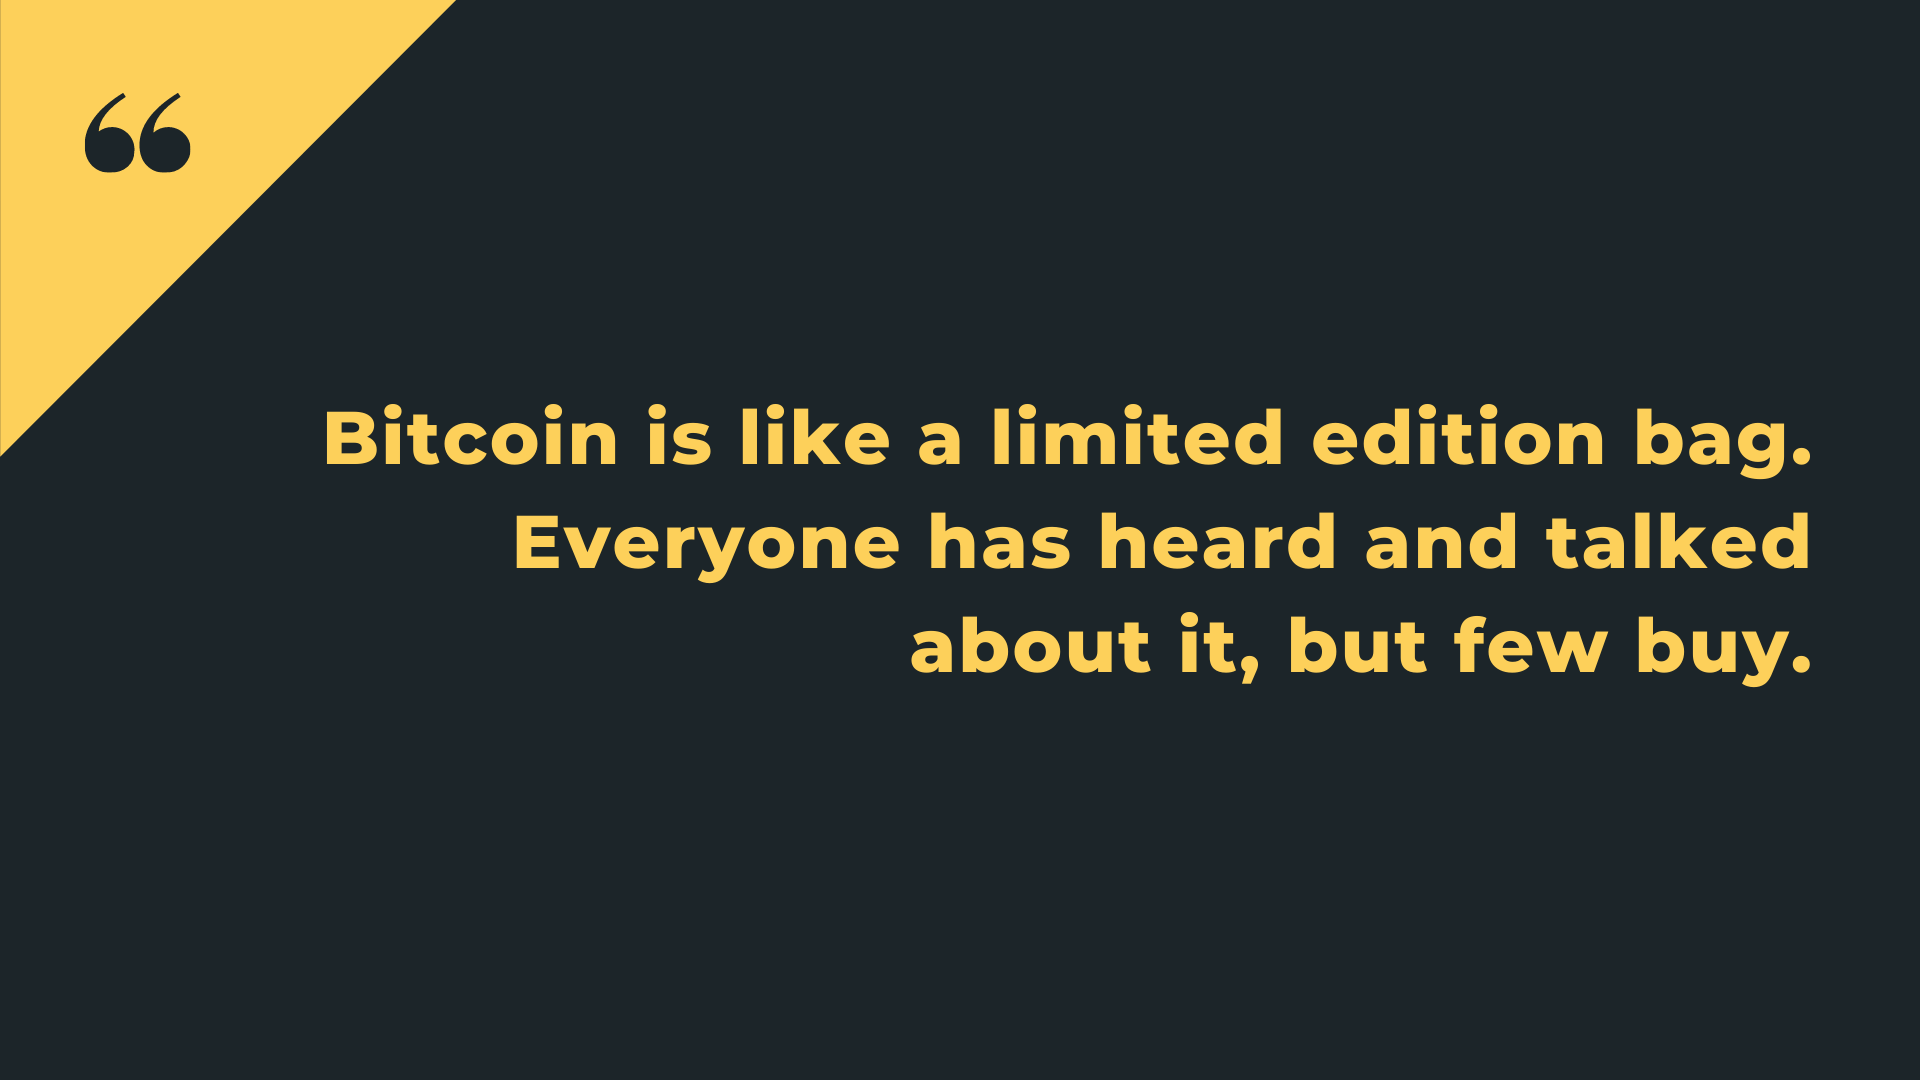 Bitcoin is like a limited edition bag. Everyone has heard and talked about it, but few buy.